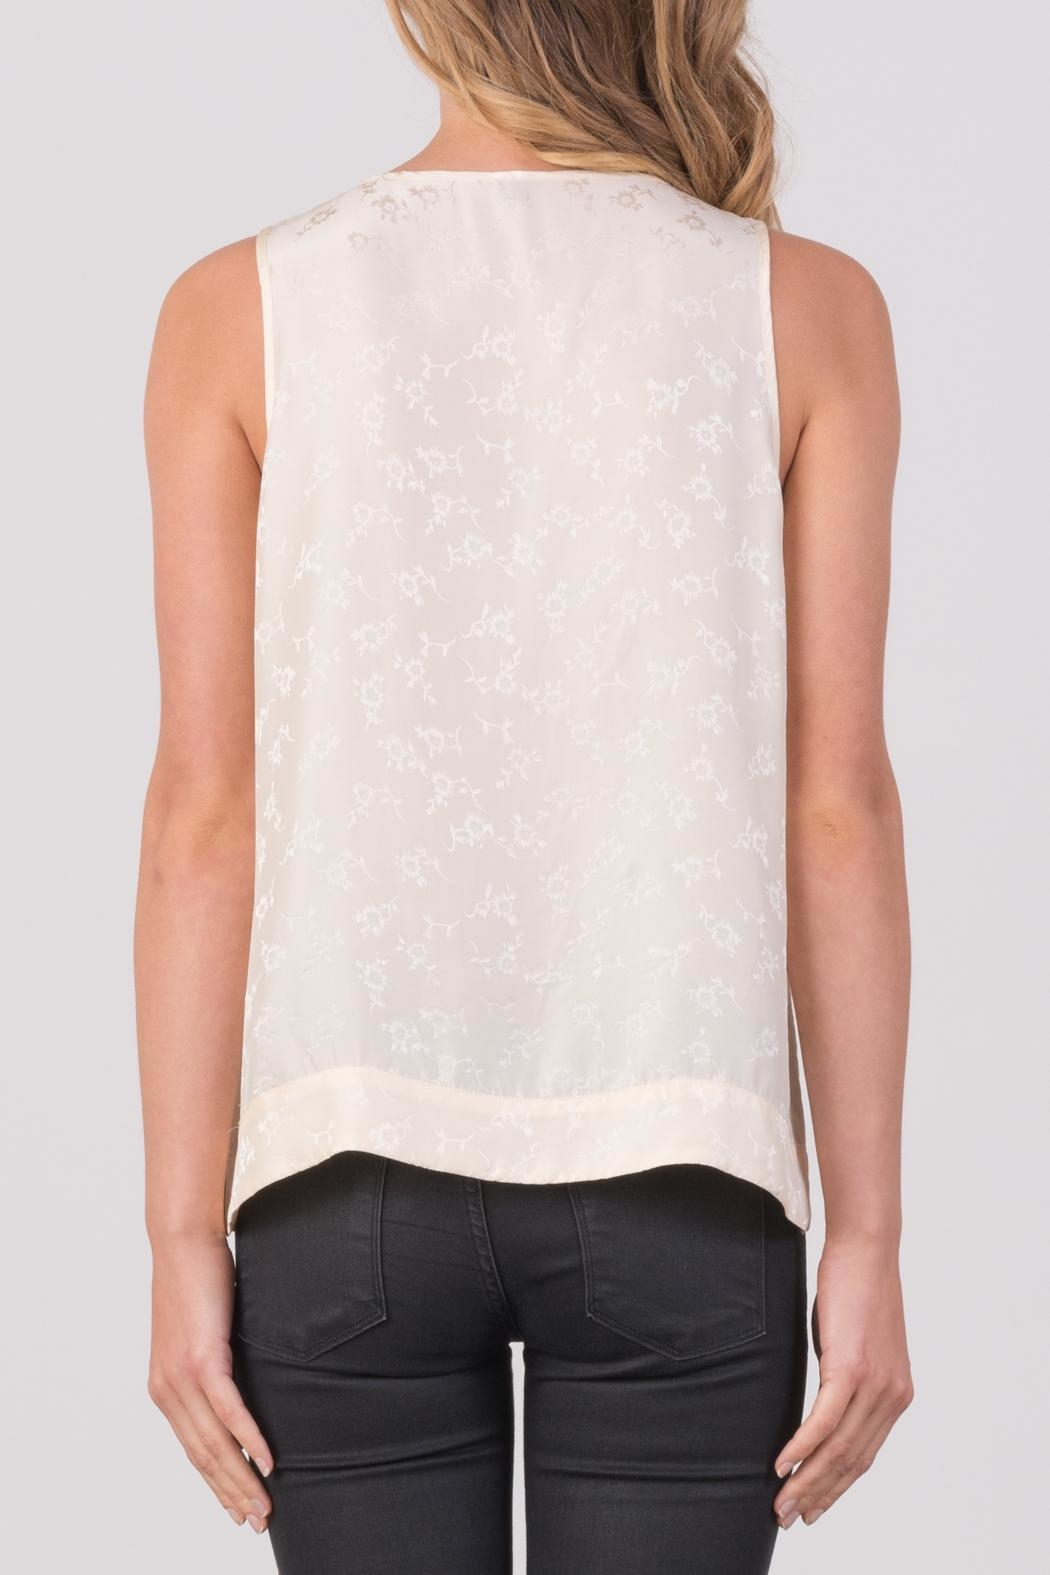 Margaret O'Leary Rachel Tank Top - Back Cropped Image